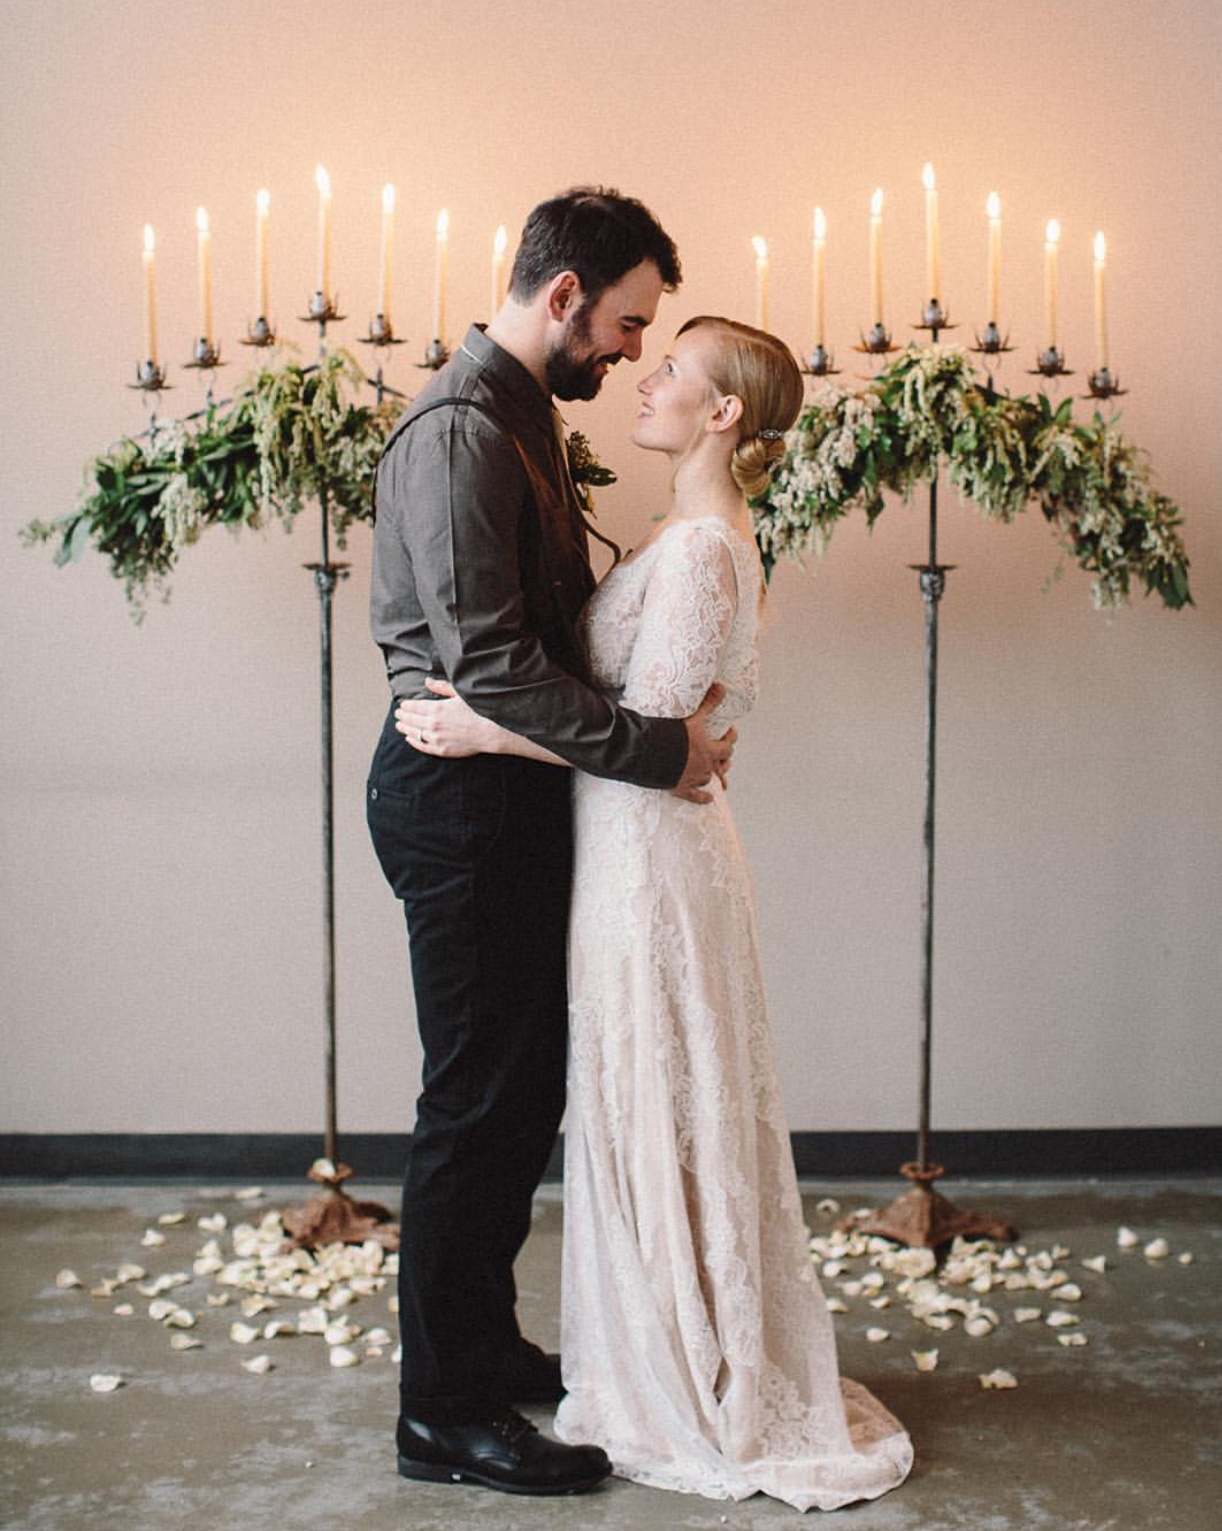 Image by Kelly Dudash of 822 Weddings. Florals by Erin Ostreicher of Nectar and Root.